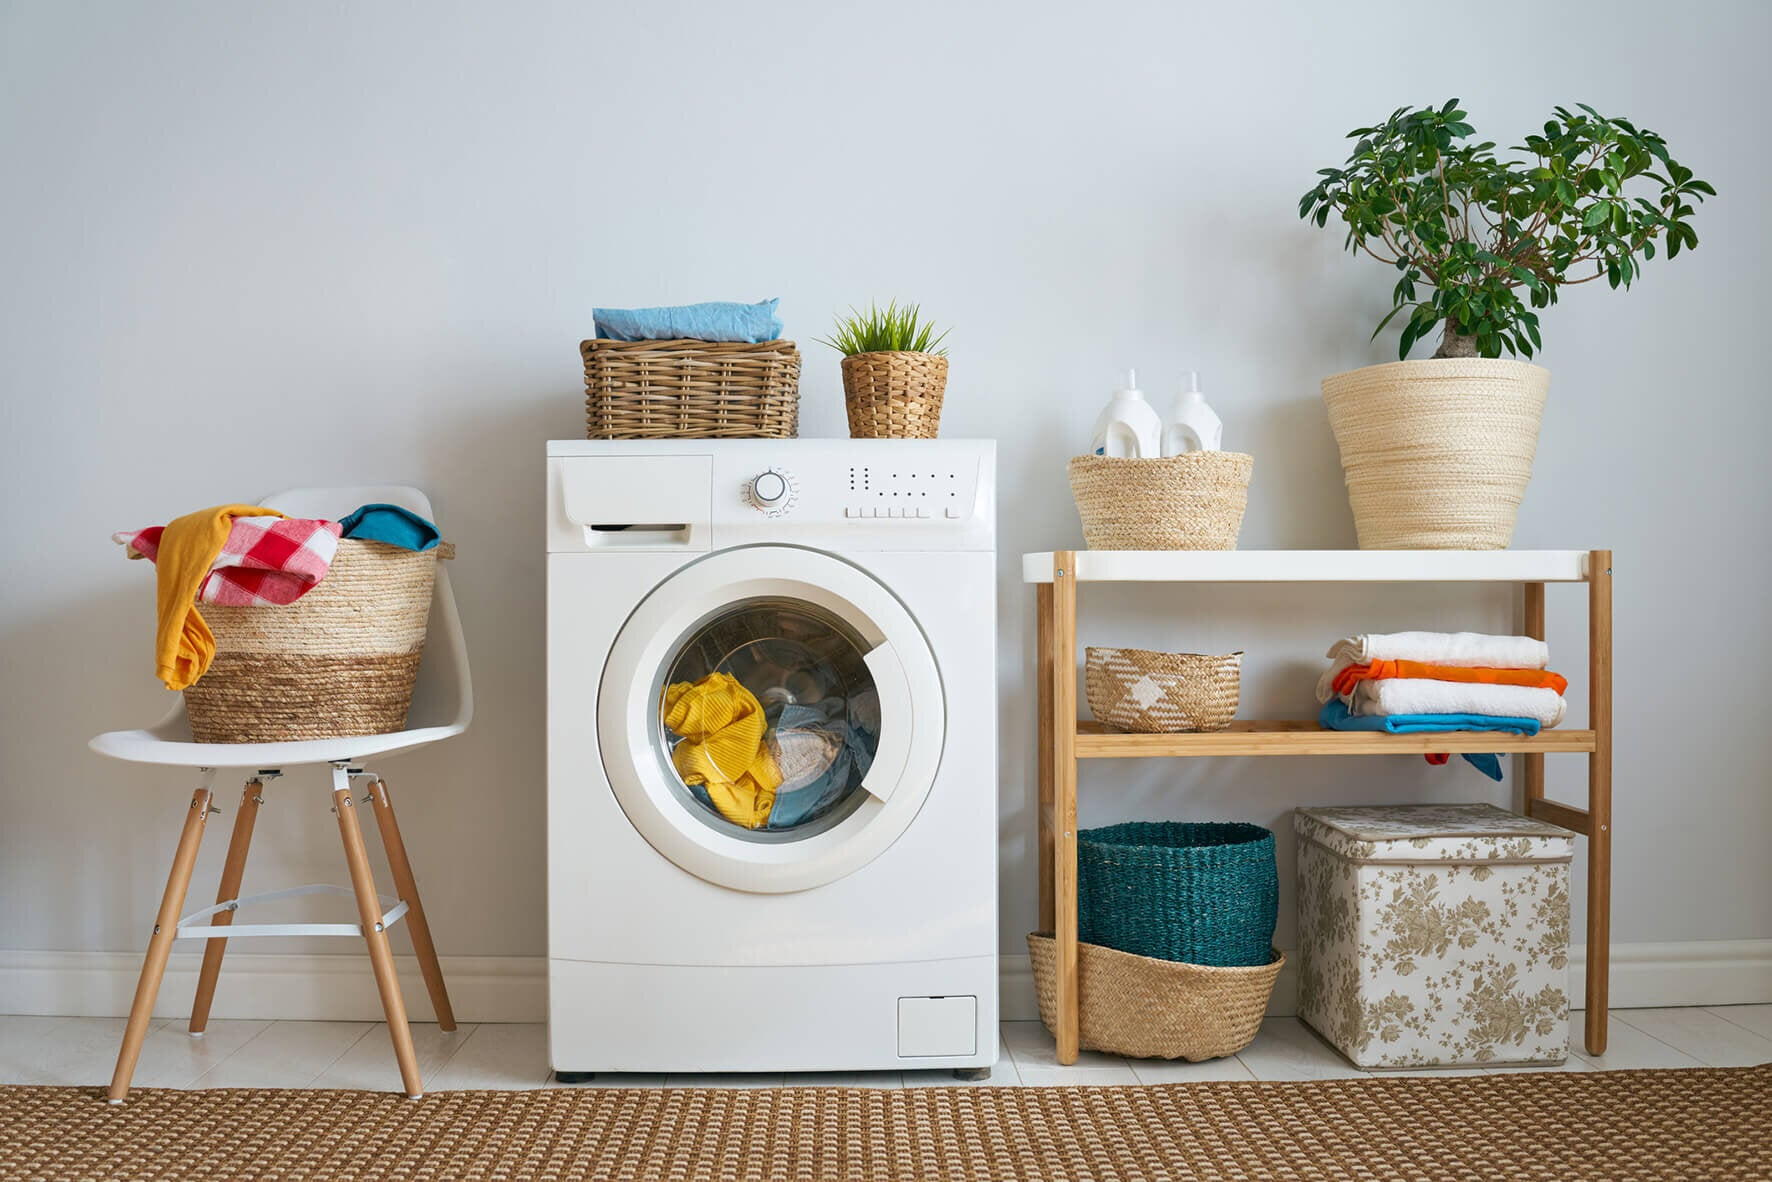 Things you might do unintentionally destroy your washing machine